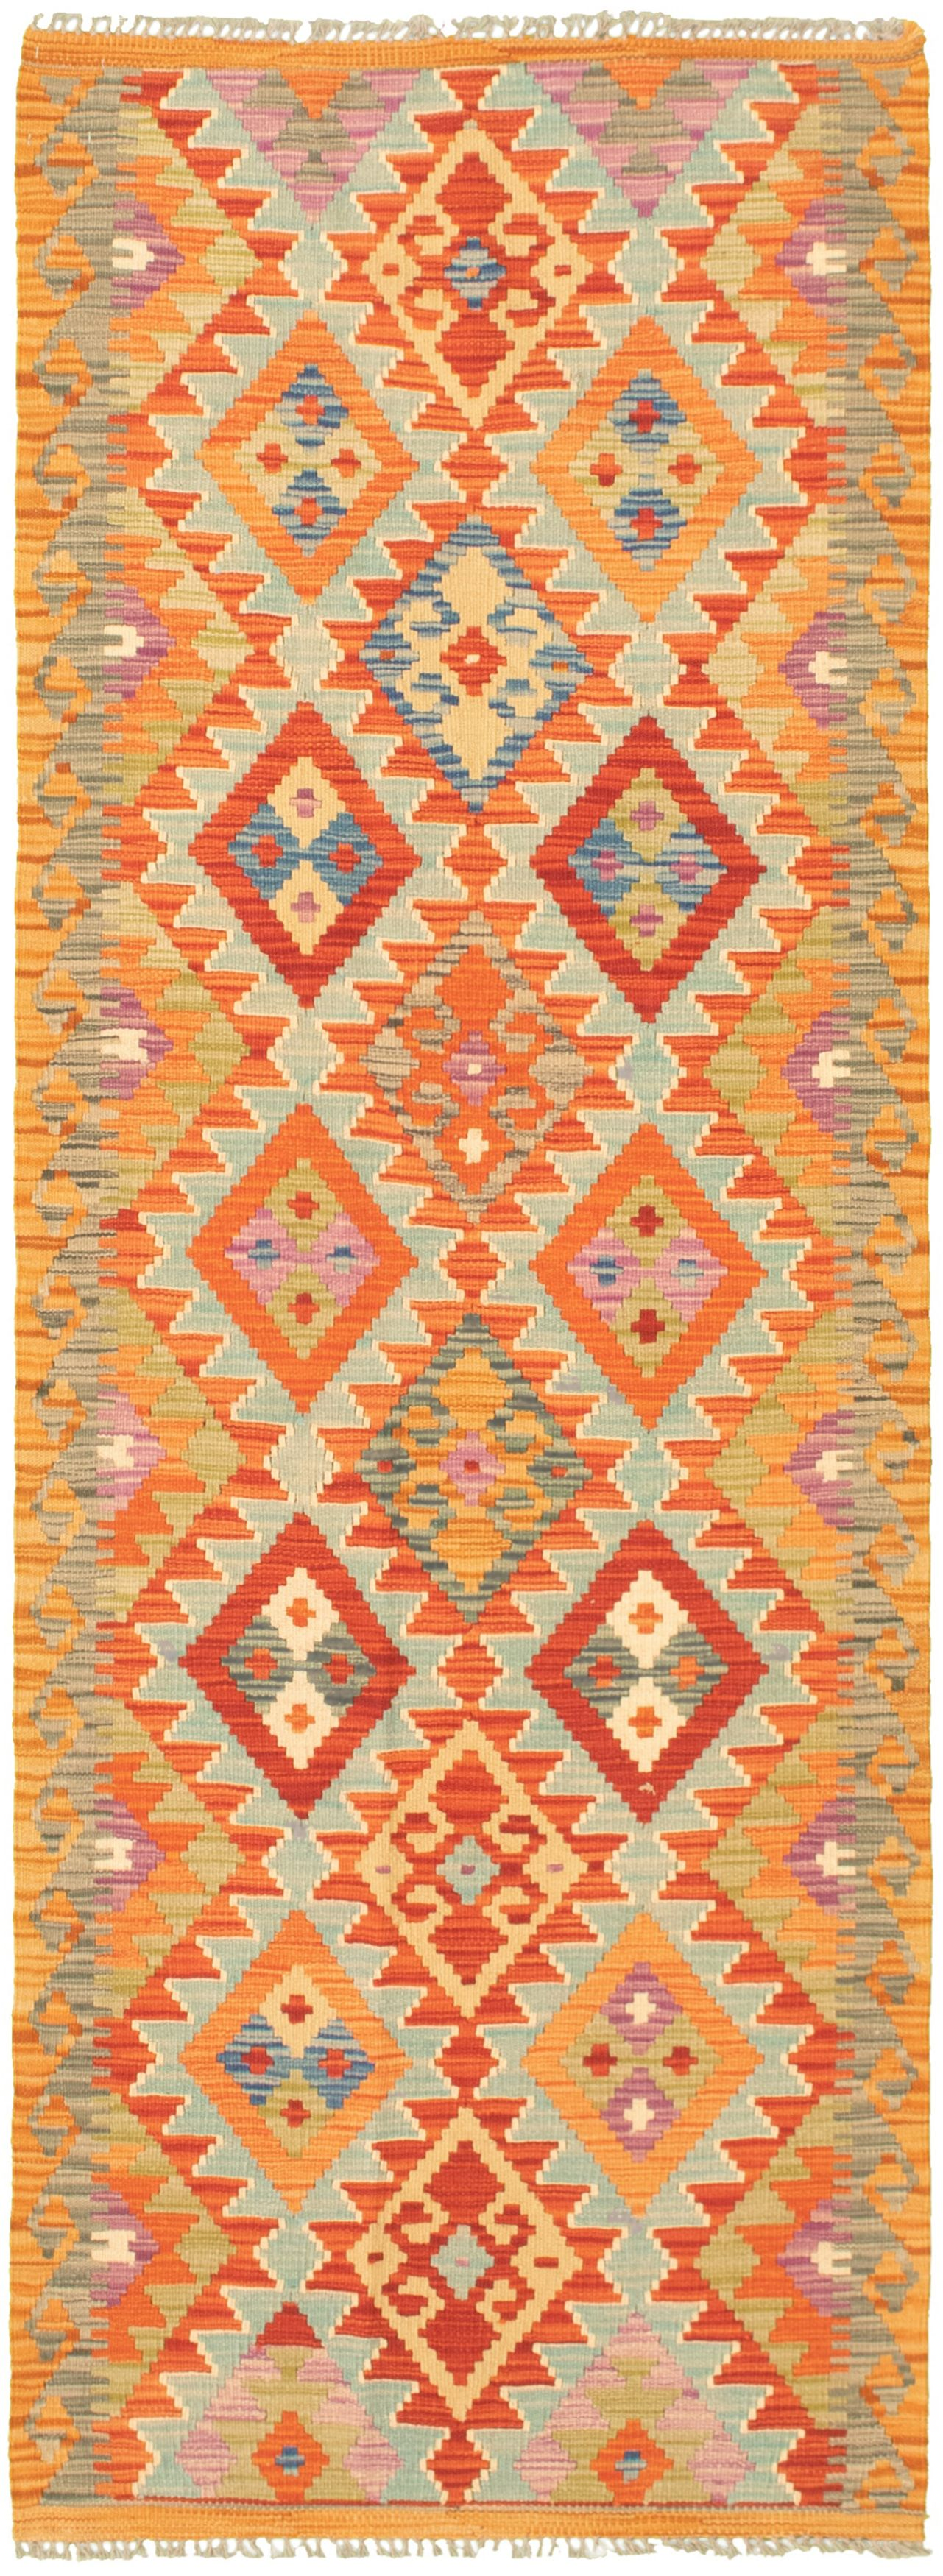 """Hand woven Bold and Colorful  Light Orange Wool Kilim 2'8"""" x 7'10"""" Size: 2'8"""" x 7'10"""""""